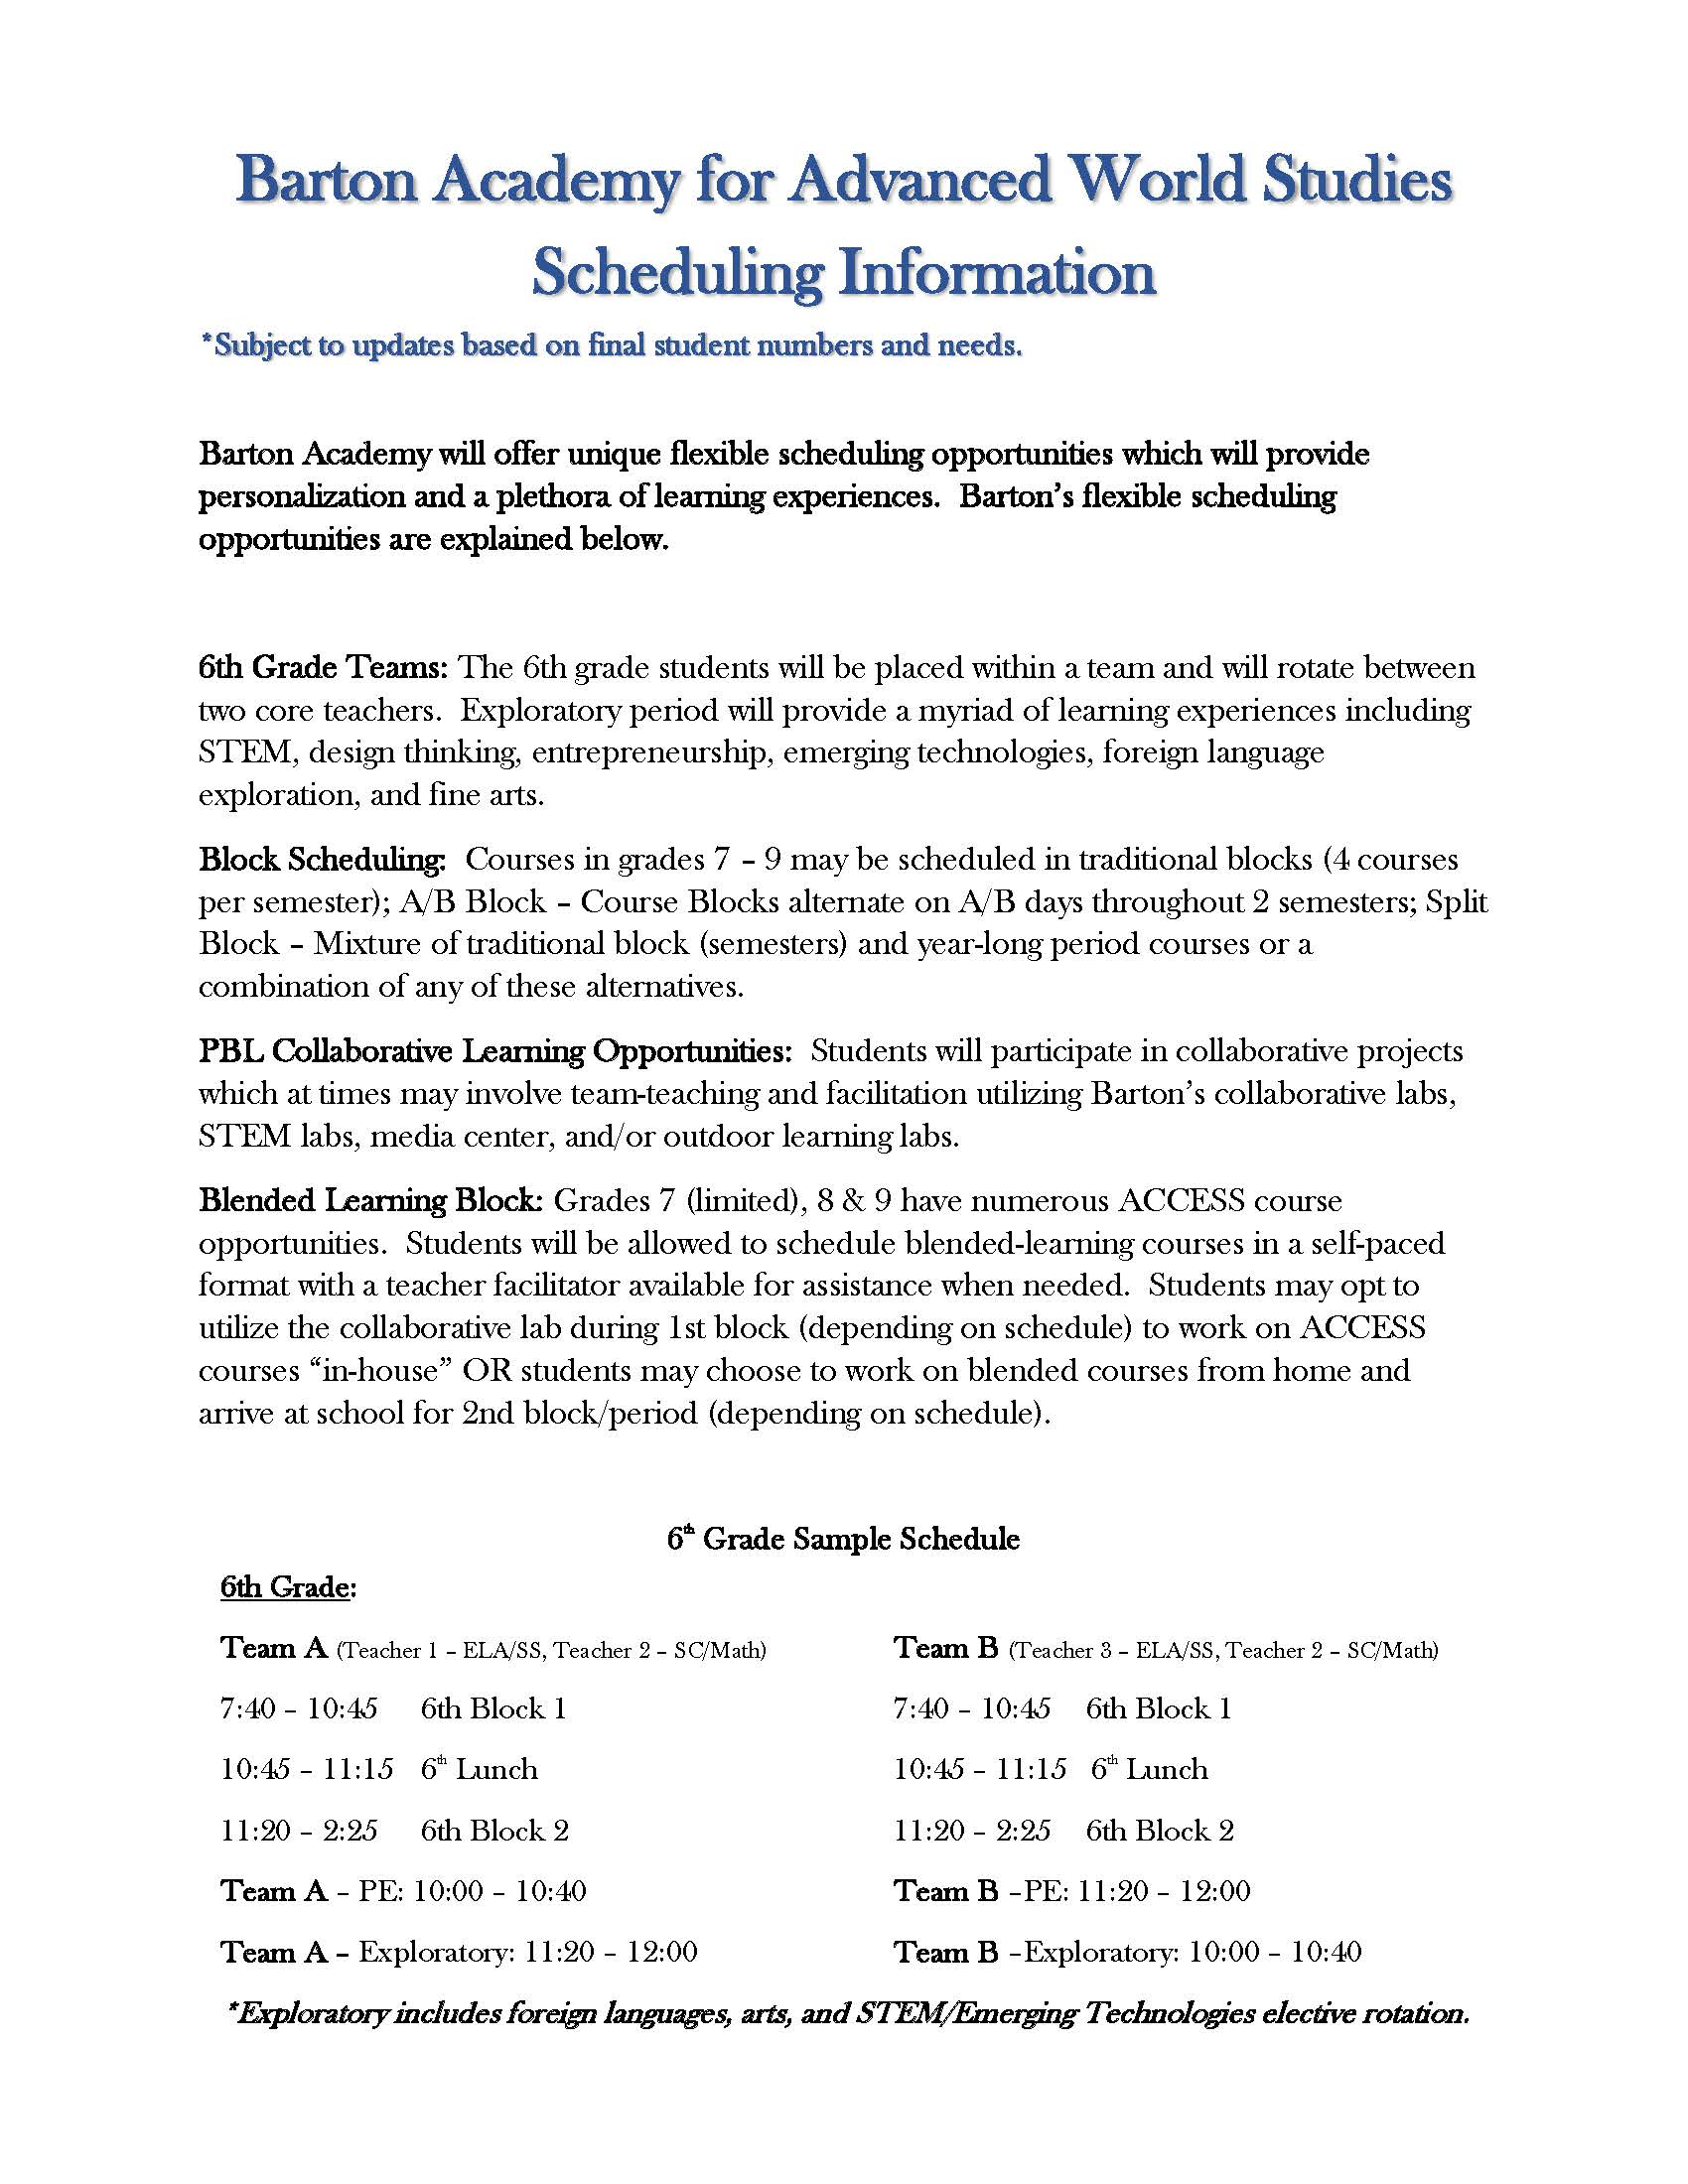 Schedule Info and 6th Grade Sample